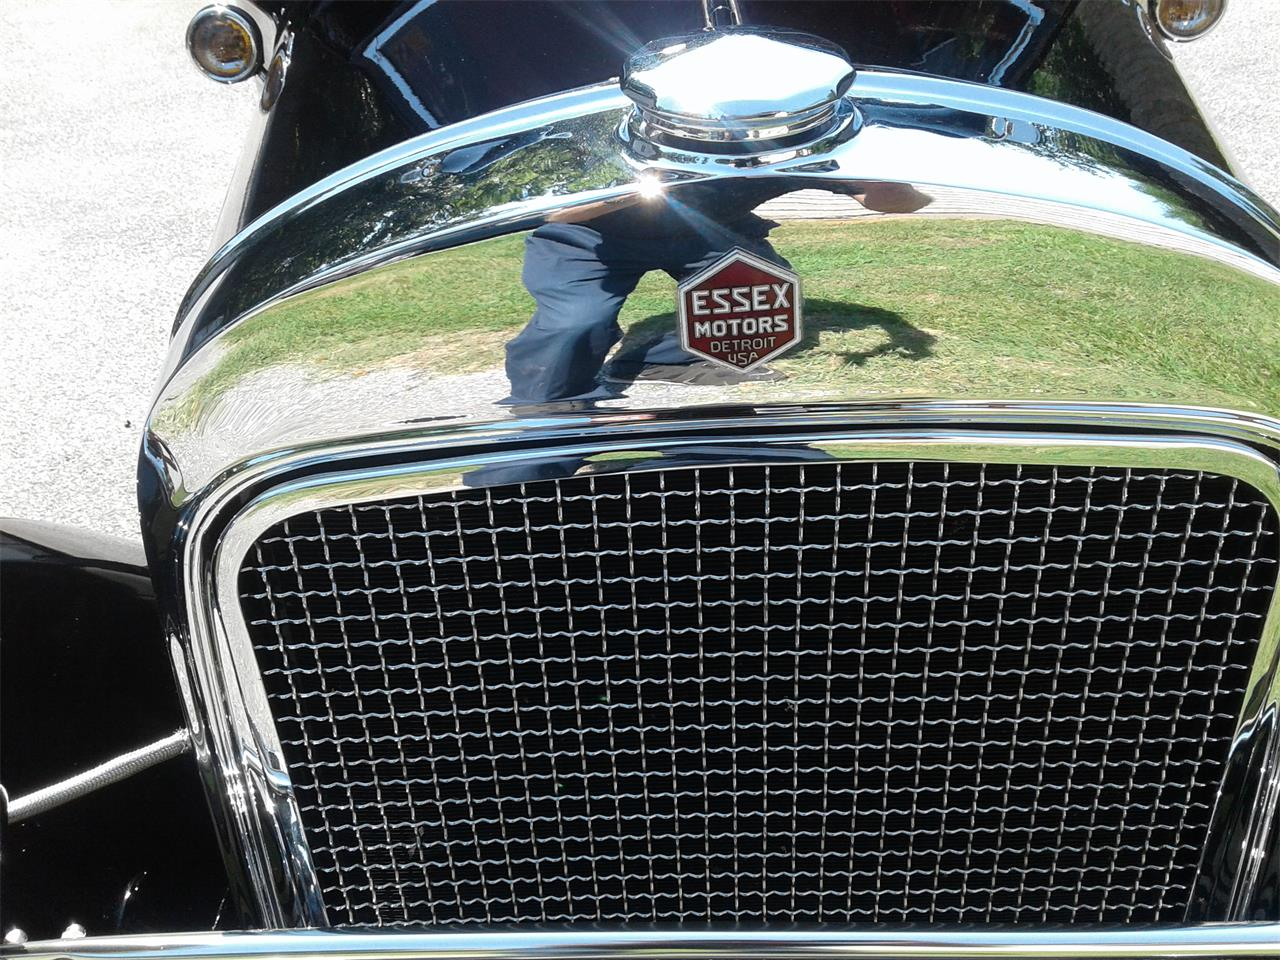 1929 Essex Coupe (CC-1370833) for sale in Harper's Ferry, West Virginia